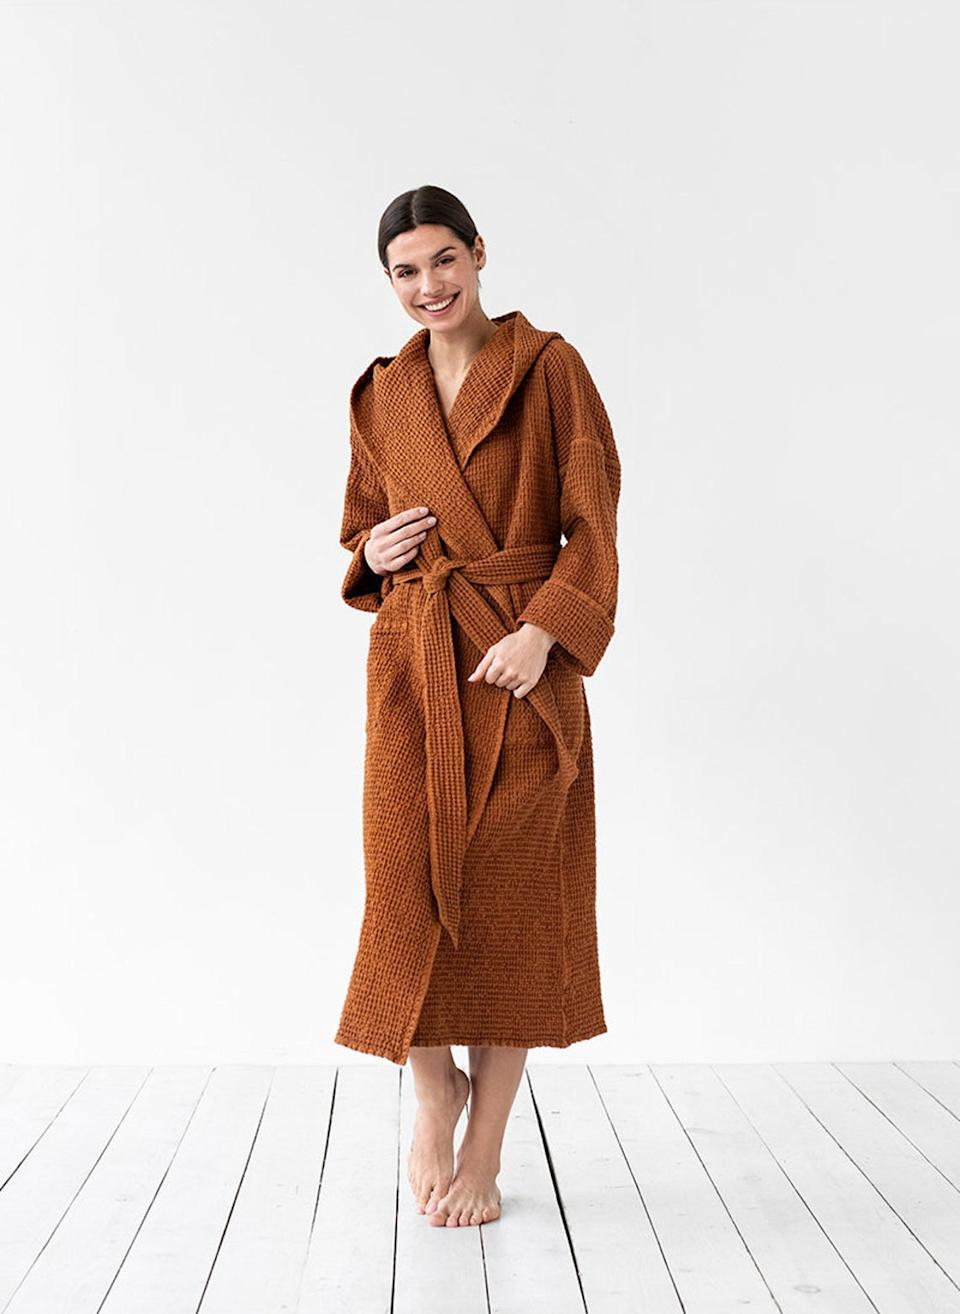 """<h3><a href=""""https://www.etsy.com/listing/696119483/womens-waffle-linen-bath-robe-unisex"""" rel=""""nofollow noopener"""" target=""""_blank"""" data-ylk=""""slk:MagicLinen Linen Waffle Bathrobe"""" class=""""link rapid-noclick-resp"""">MagicLinen Linen Waffle Bathrobe</a></h3><br>Simple waffle weave meets luxurious stone-washed linen and elopes in glamorous oversized fashion — and here's what the critics are saying: """"It is stunning! It fits perfectly. It is very elegant and comfortable. I highly recommend buying this robe.""""<br><br><strong>MagicLinen</strong> Stonewashed Linen Waffle Bathrobe, $, available at <a href=""""https://go.skimresources.com/?id=30283X879131&url=https%3A%2F%2Fwww.etsy.com%2Flisting%2F696119483%2Fwomens-waffle-linen-bath-robe-unisex"""" rel=""""nofollow noopener"""" target=""""_blank"""" data-ylk=""""slk:Etsy"""" class=""""link rapid-noclick-resp"""">Etsy</a>"""